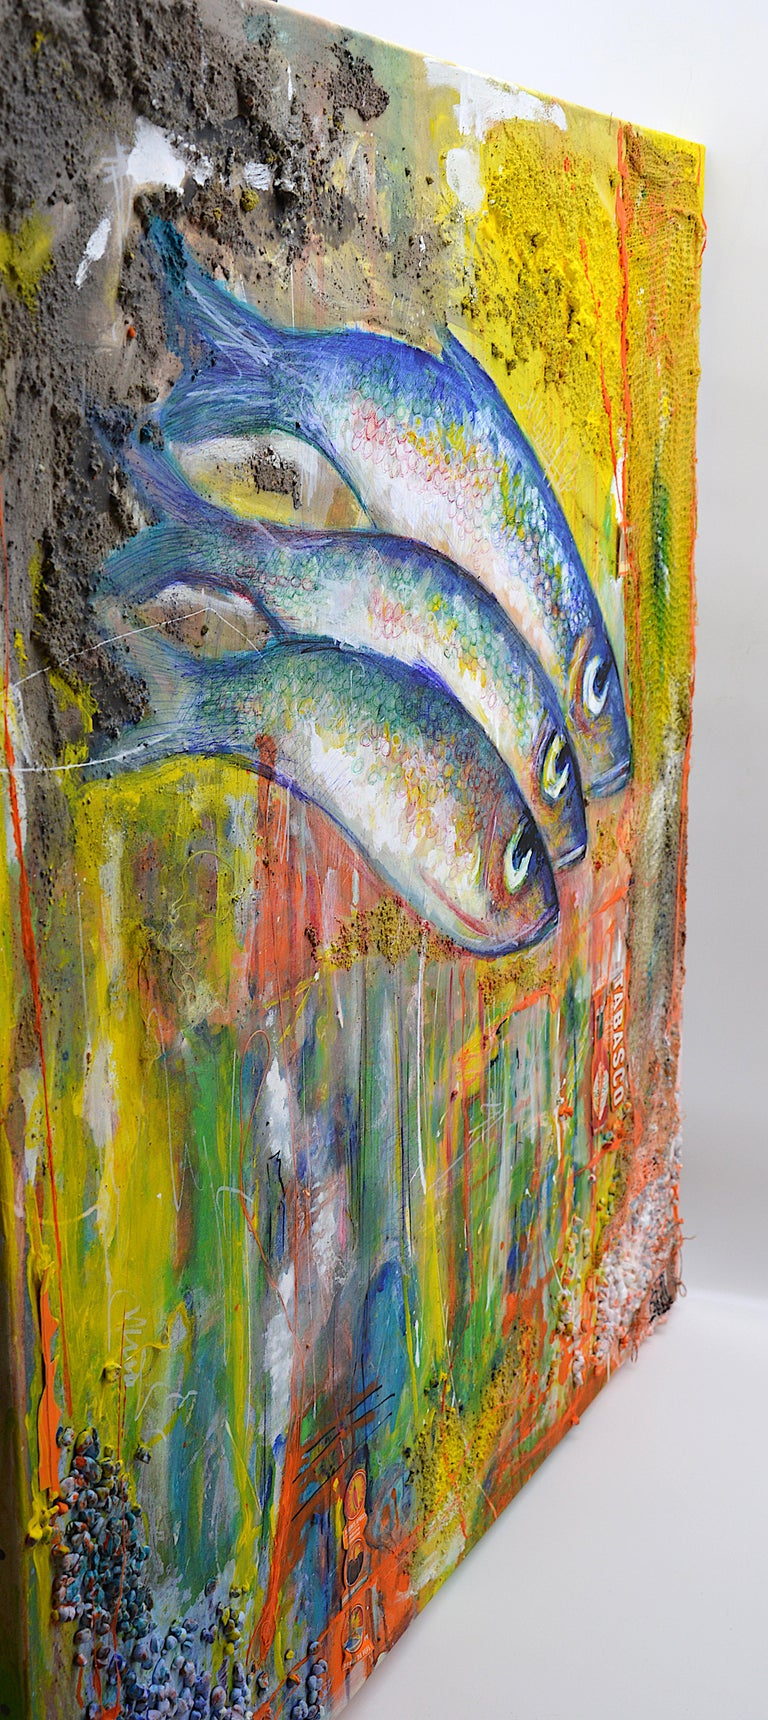 Bertrand Raymond, Mixed Media on Canvas, Sardines number #4, 2020, Fish For Sale 3